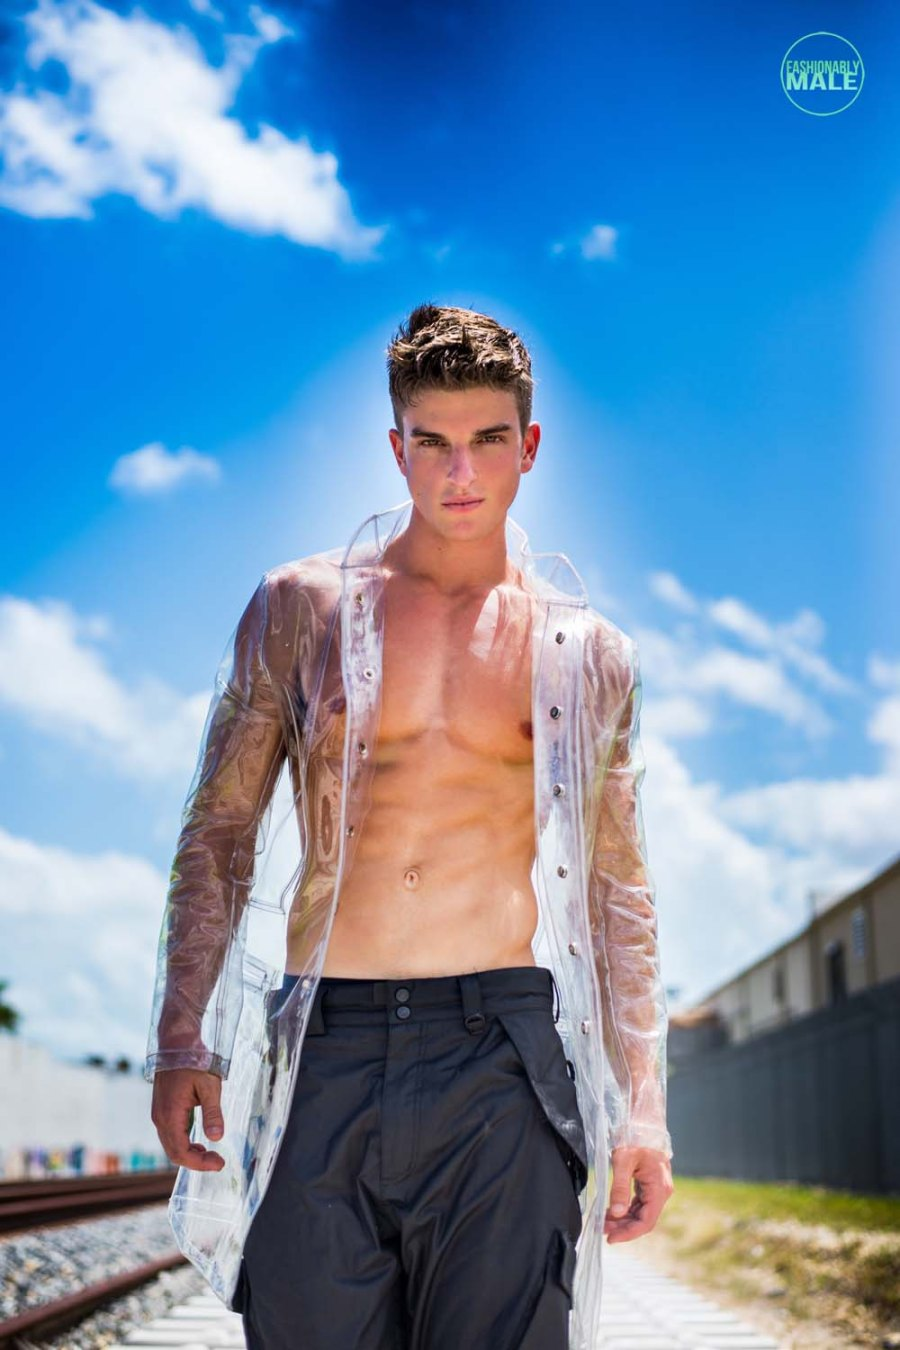 Bruno Scafidi by Ivan Avila for Fashionably Male4